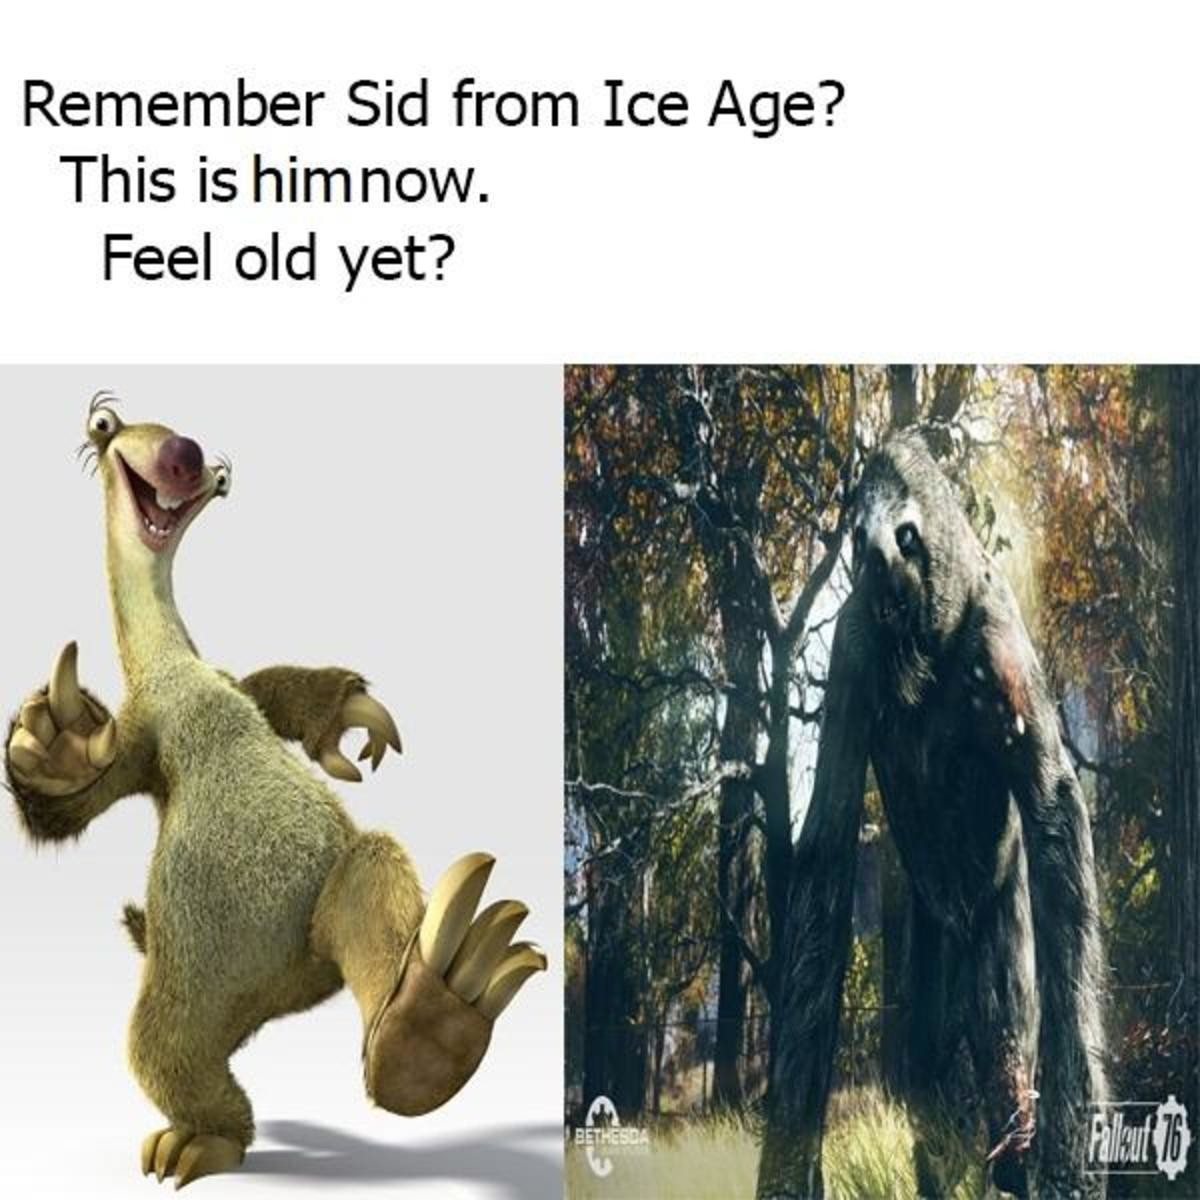 Time flies. join list: VideoGameHumor (1700 subs)Mention History. xtr Sid from Ice Age'? This is him now. Feel old yet?. Im gonna be 100, giant sloth is pretty scary